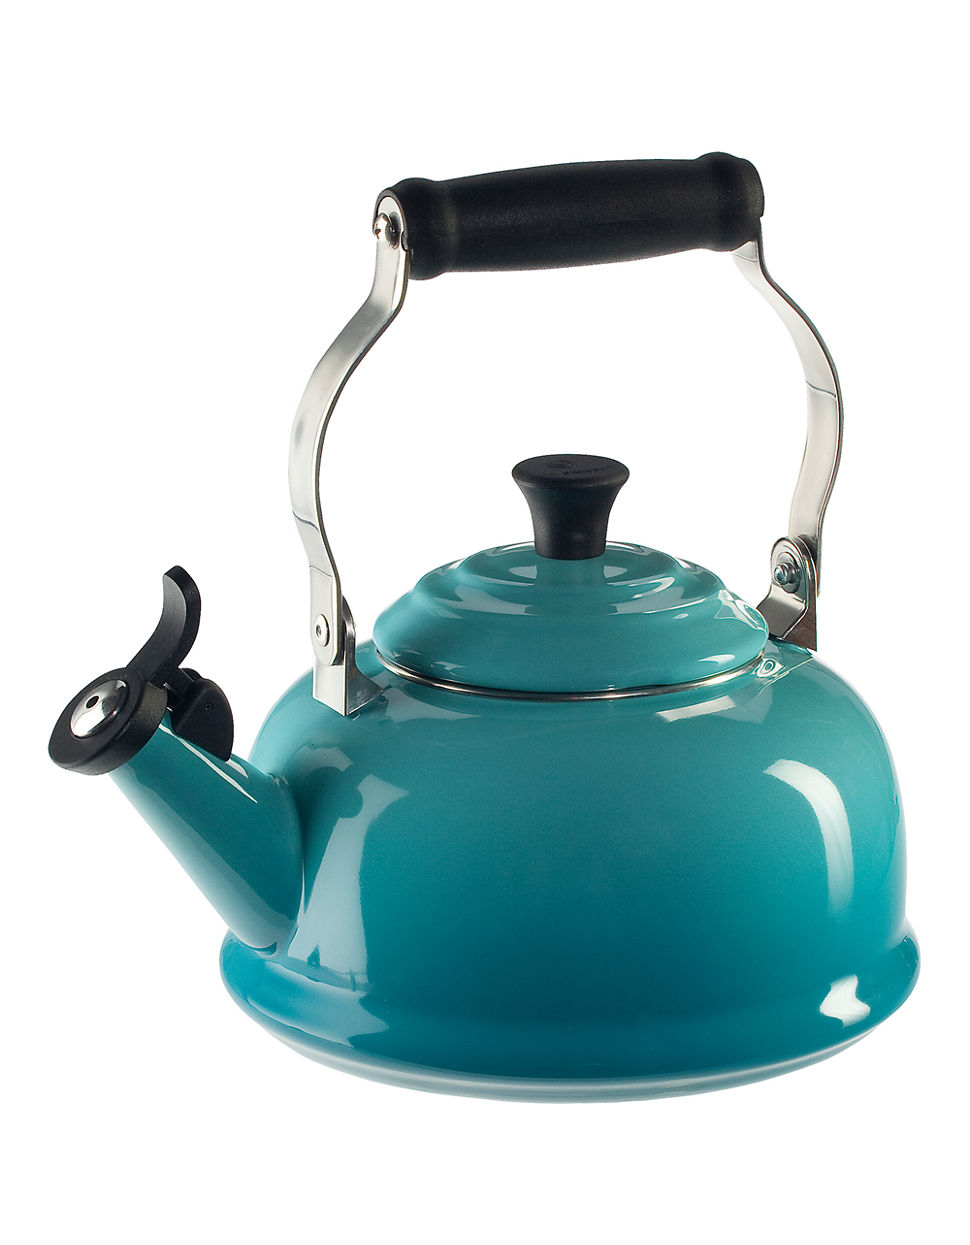 stovetop kettles  kettles  coffee  tea  kitchen  home  - classic whistling kettle